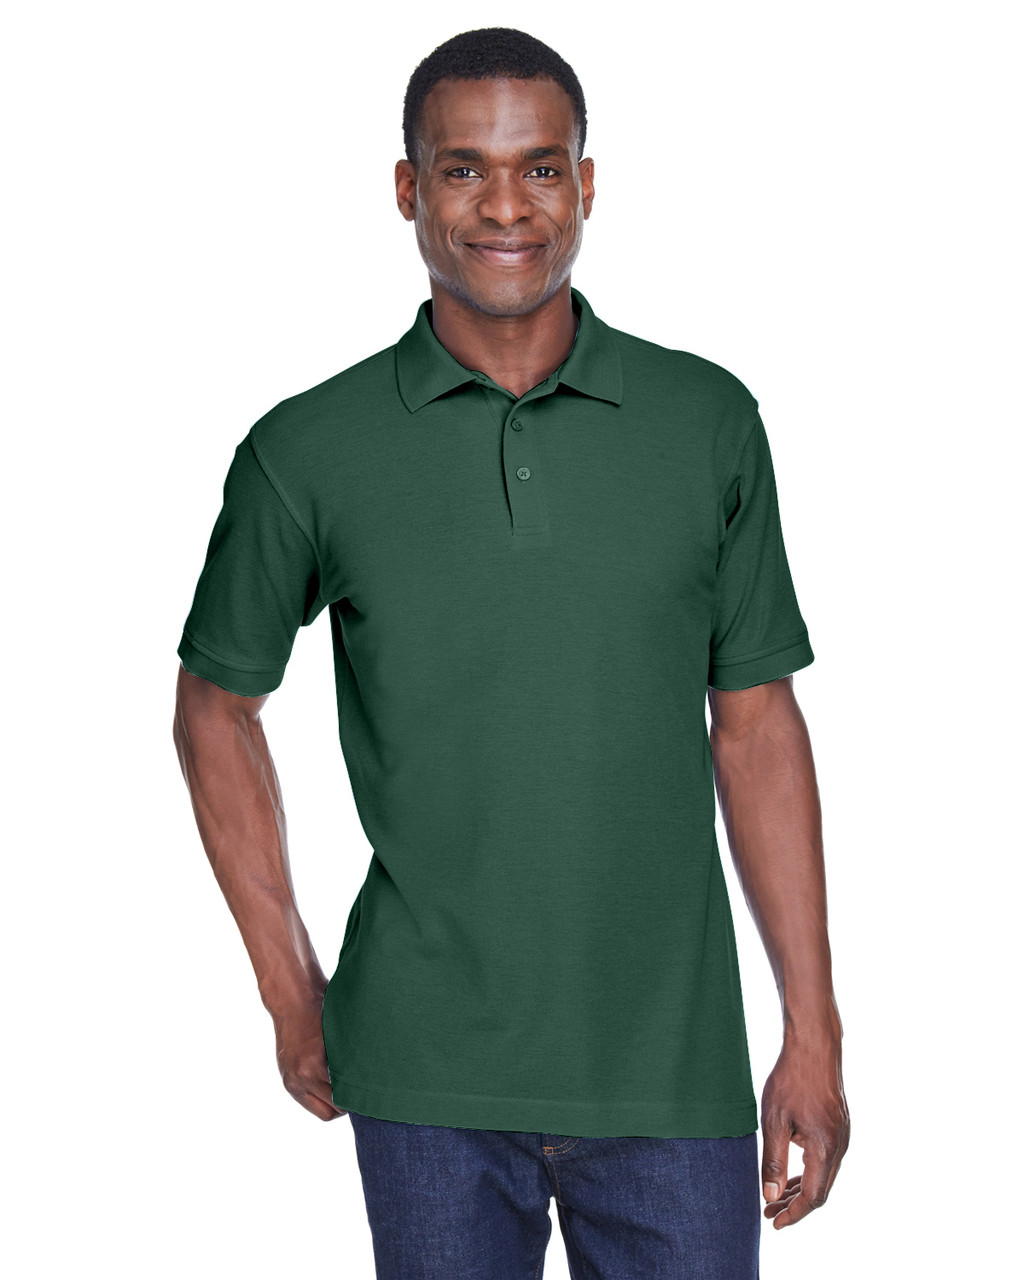 Hunter - M280 Harriton Men's Blend-Tek Polo Shirt | BlankClothing.ca